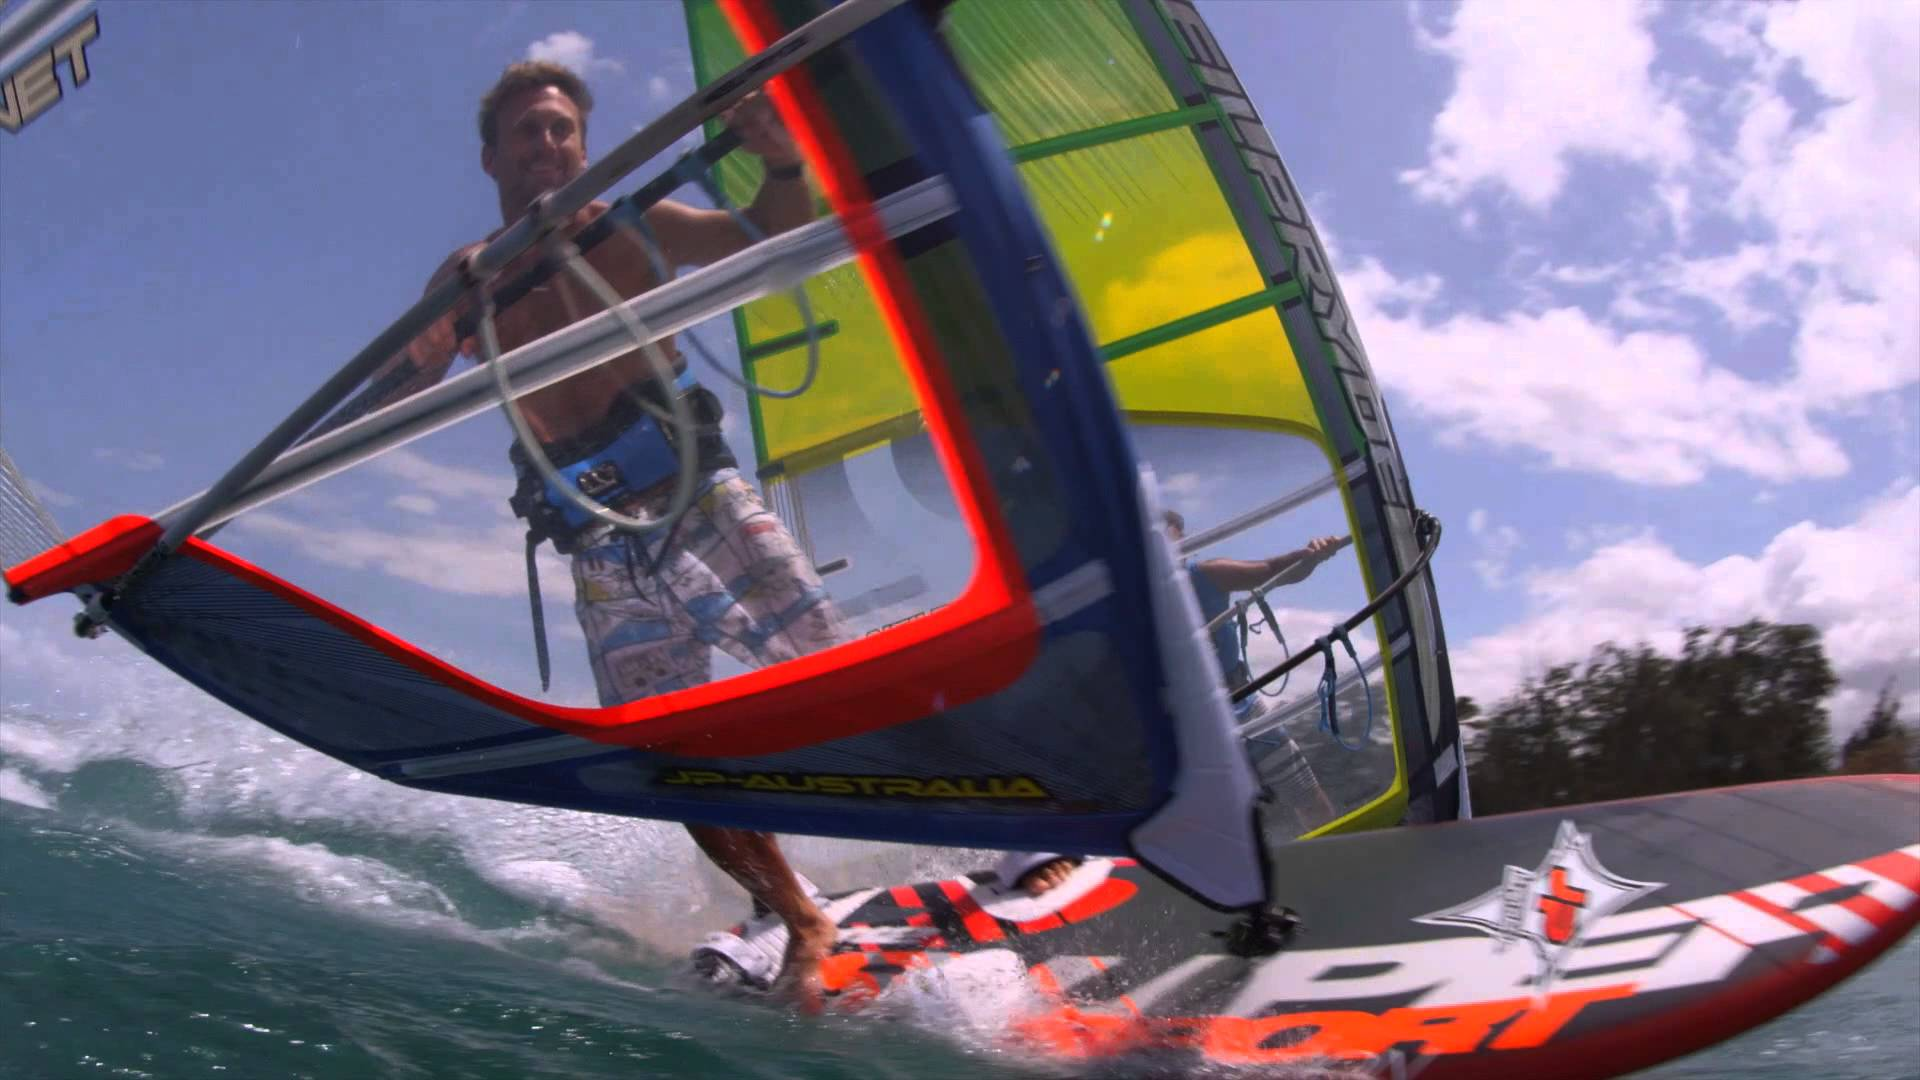 Extreme Windsurfing – The Story of Forceline